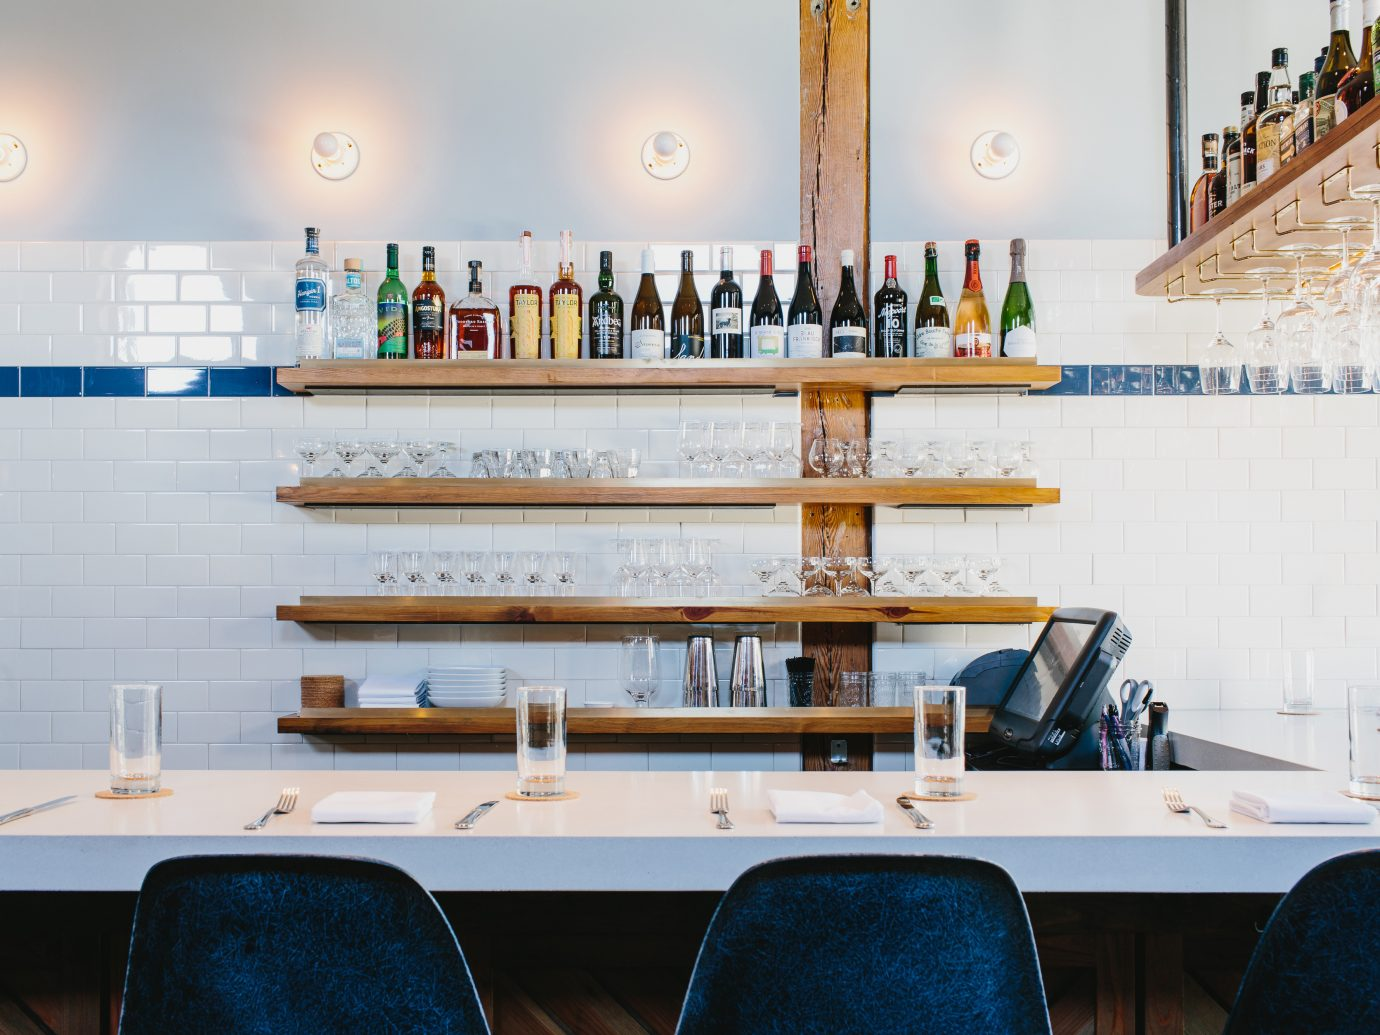 Clean white bar top with white walls and light wood shelves holding bottles